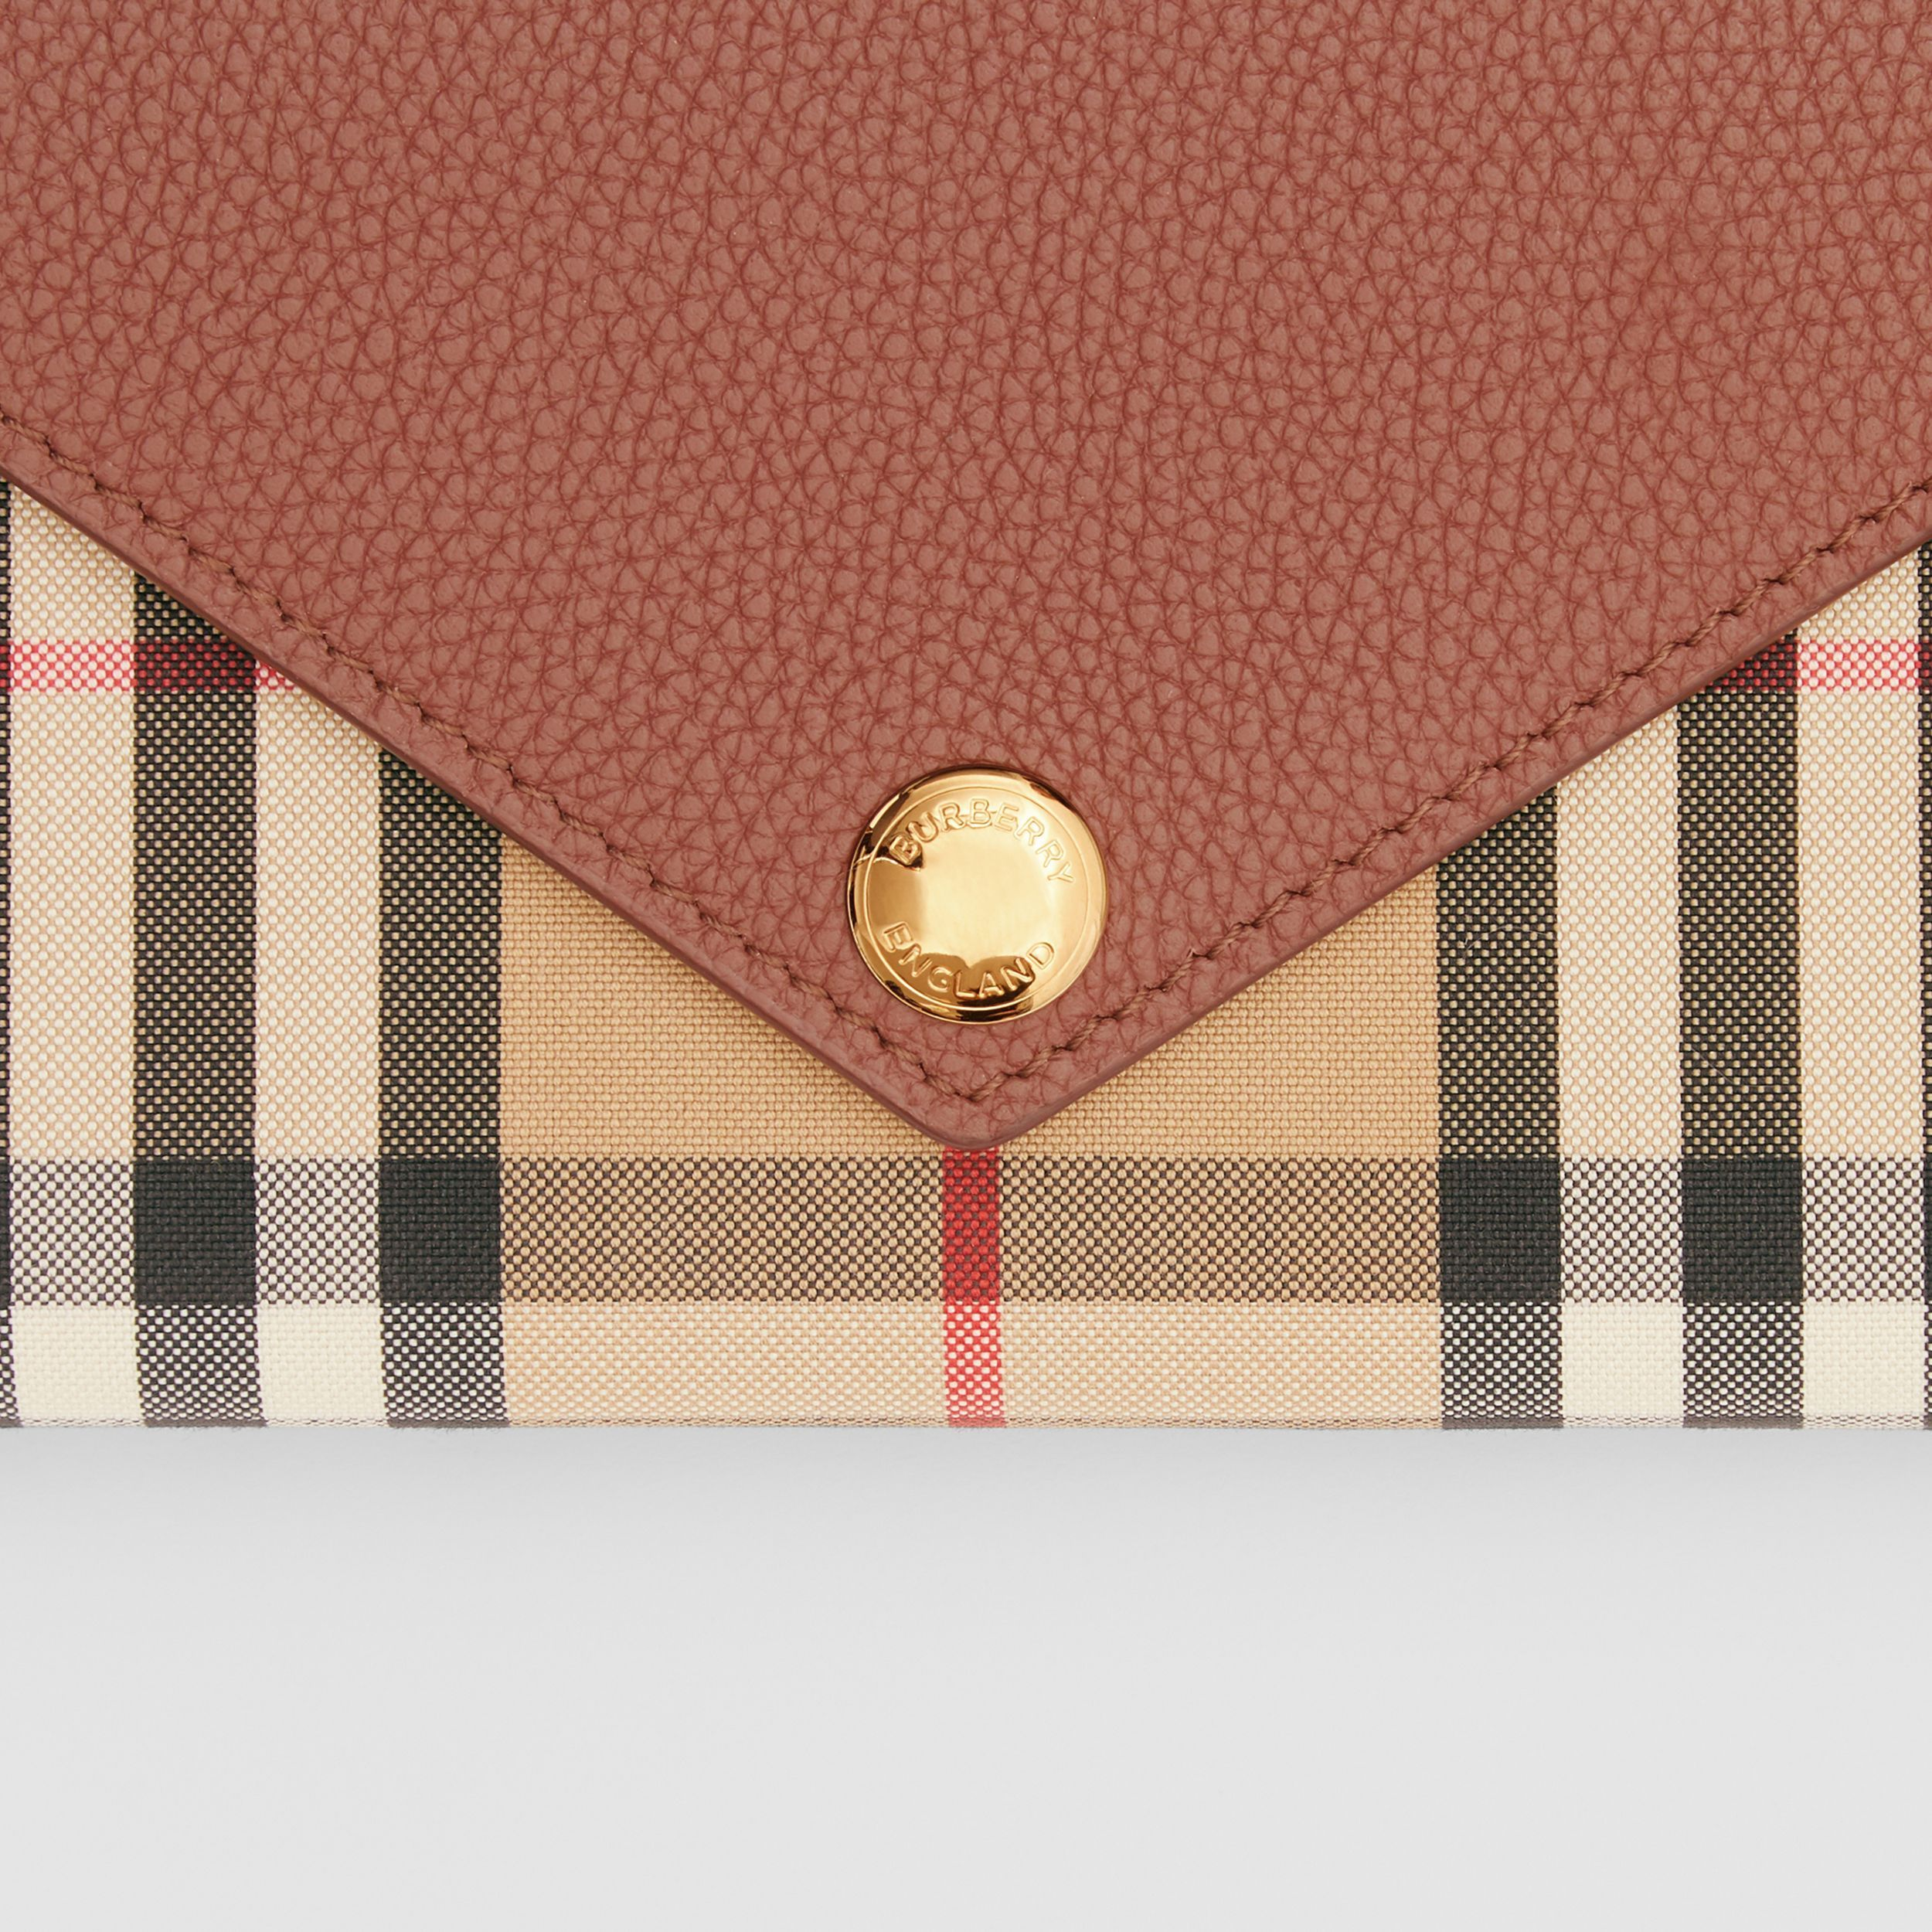 Vintage Check and Leather Continental Wallet in Tan - Women  Burberry United States #Ad, , #Sponsored, #Continental, #Wallet, #Leather, #Vintage, #Check